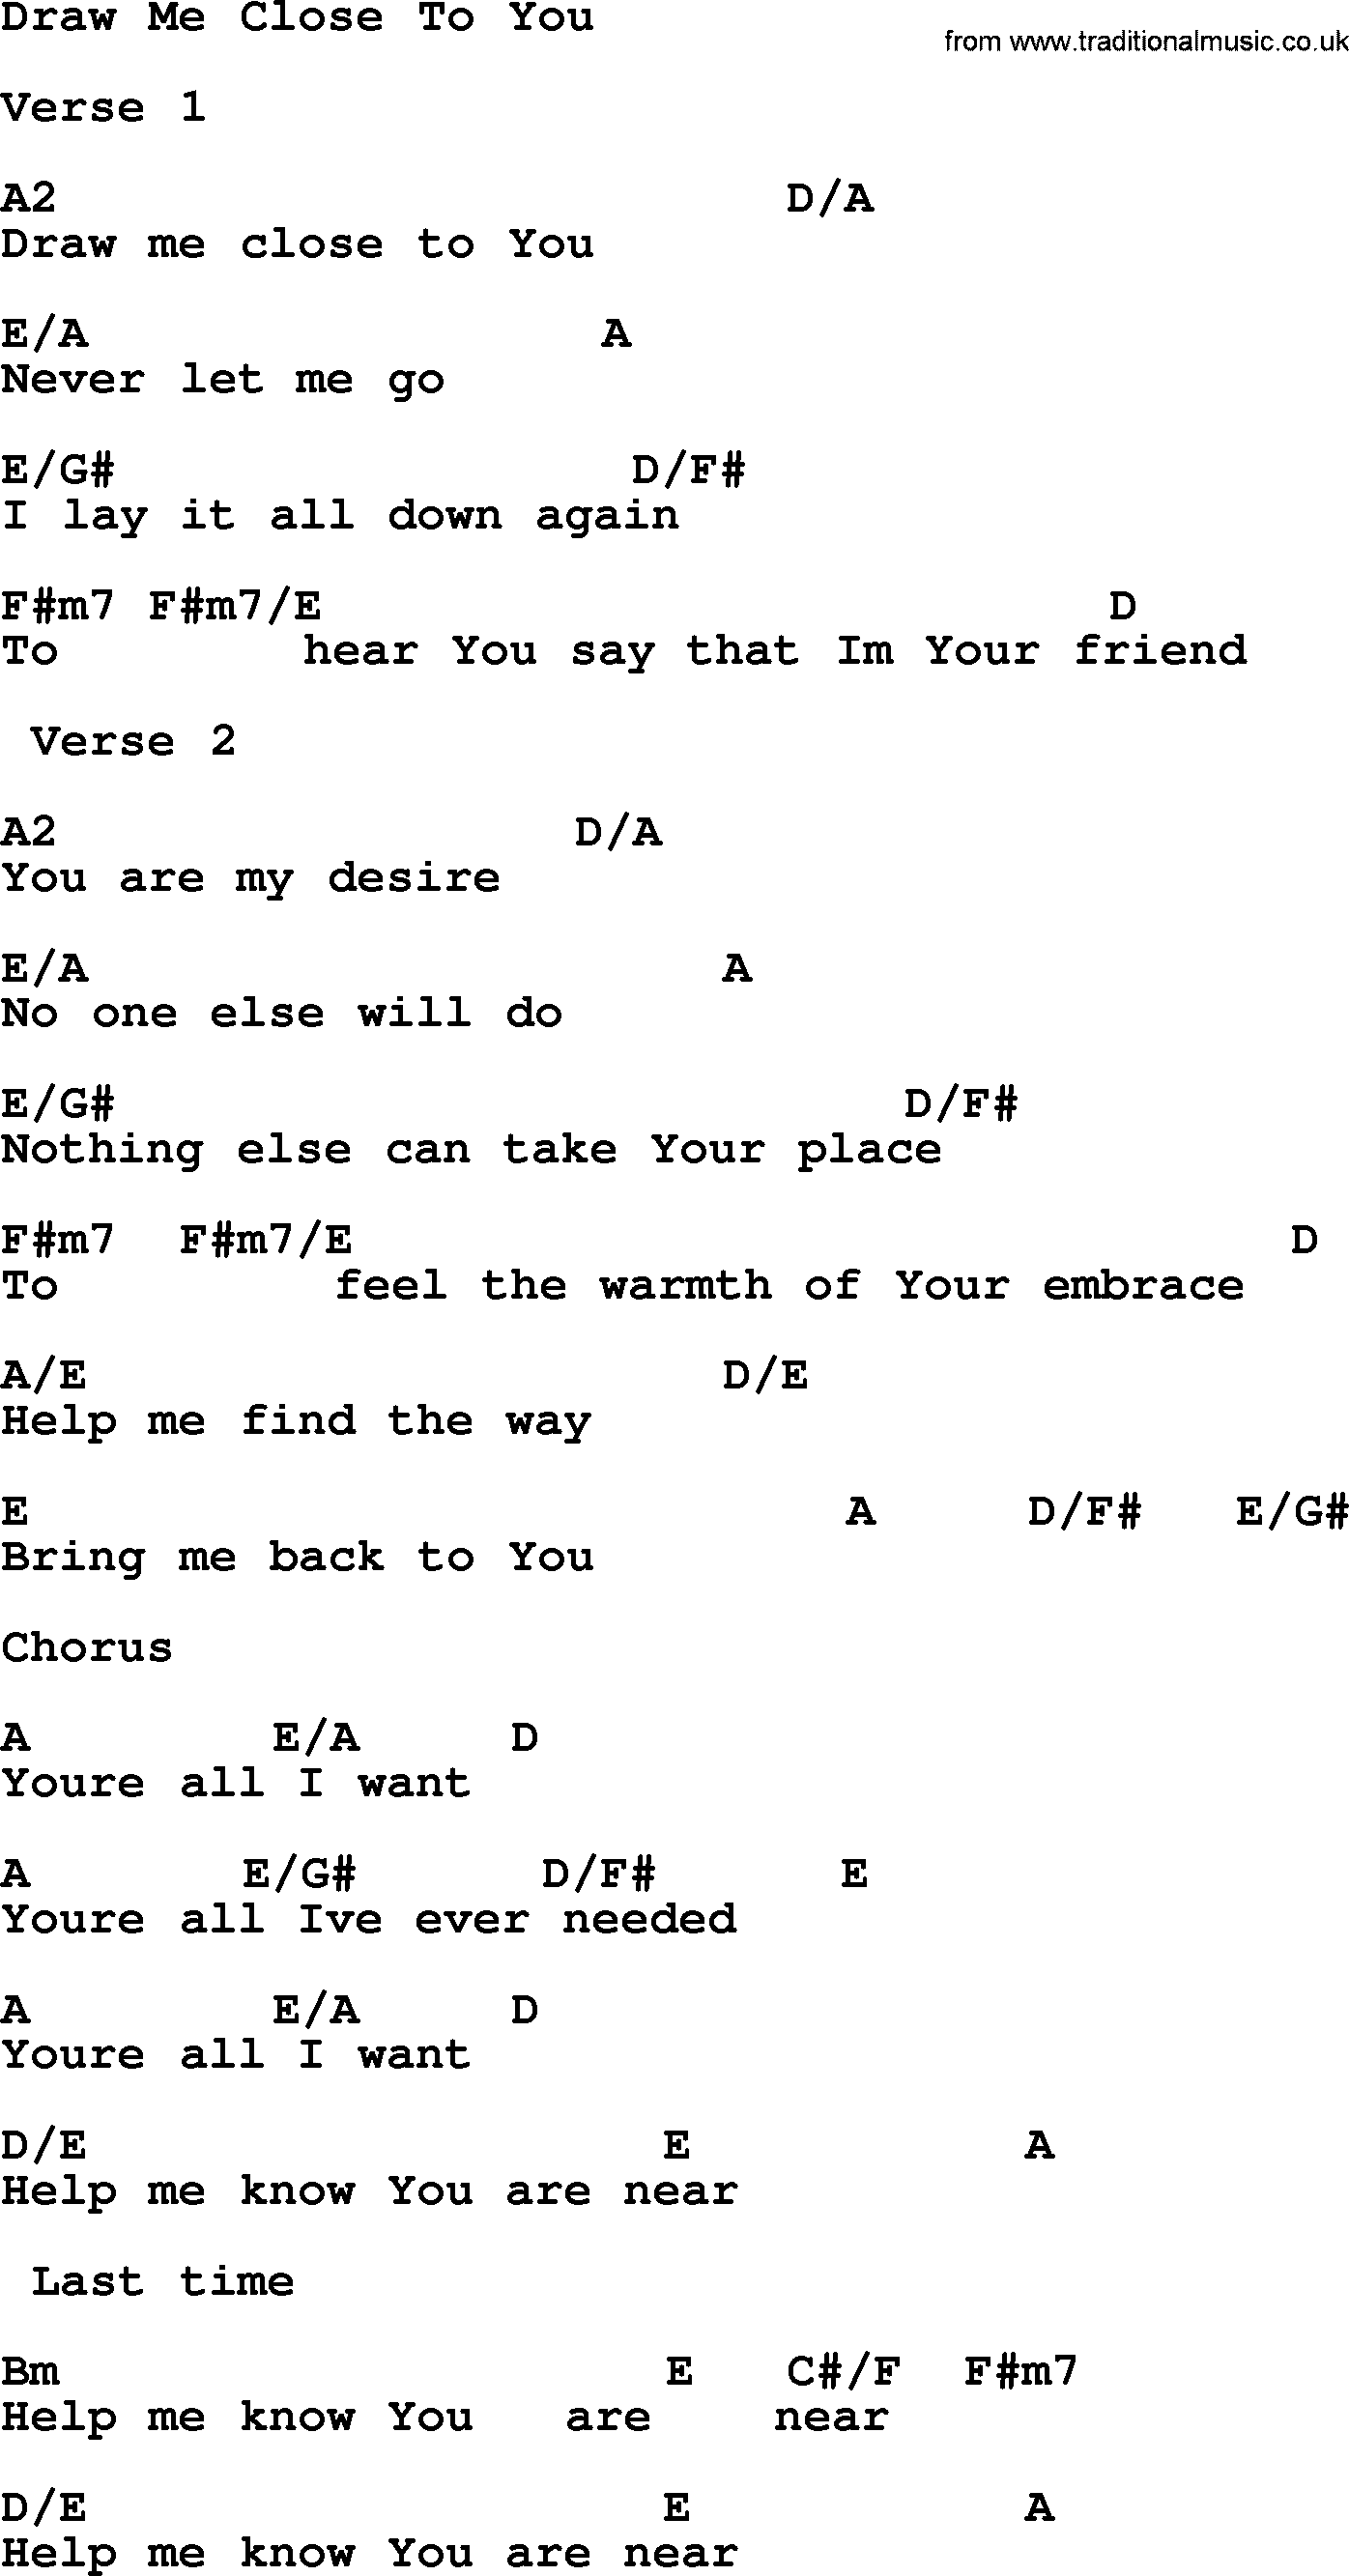 Funeral Hymn Draw Me Close To You Crd Lyrics And Pdf